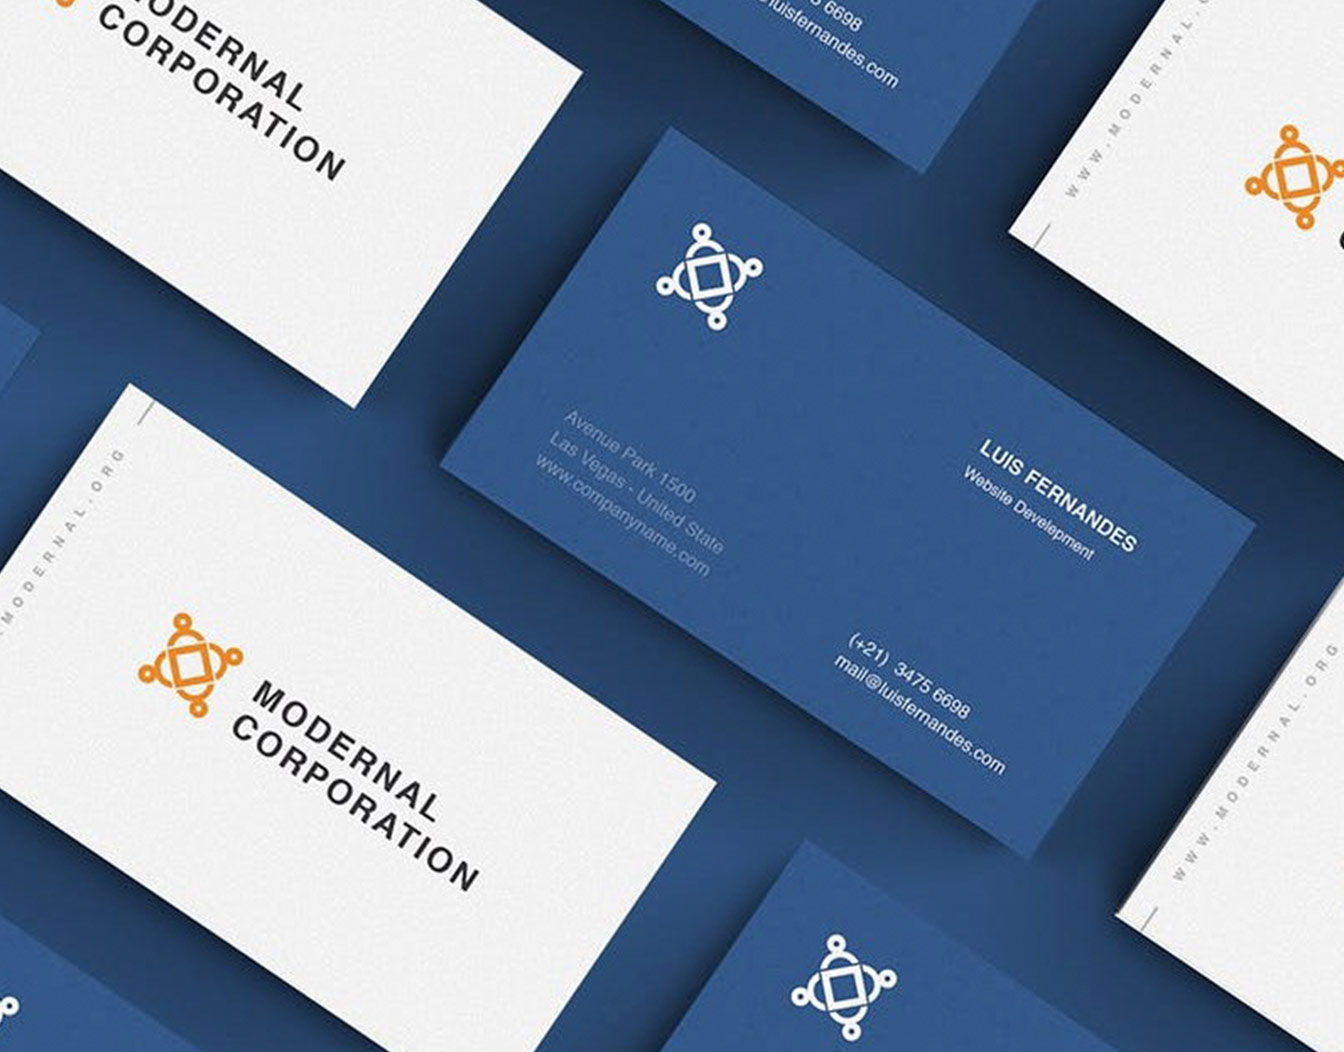 Corporate white business card on blue background.